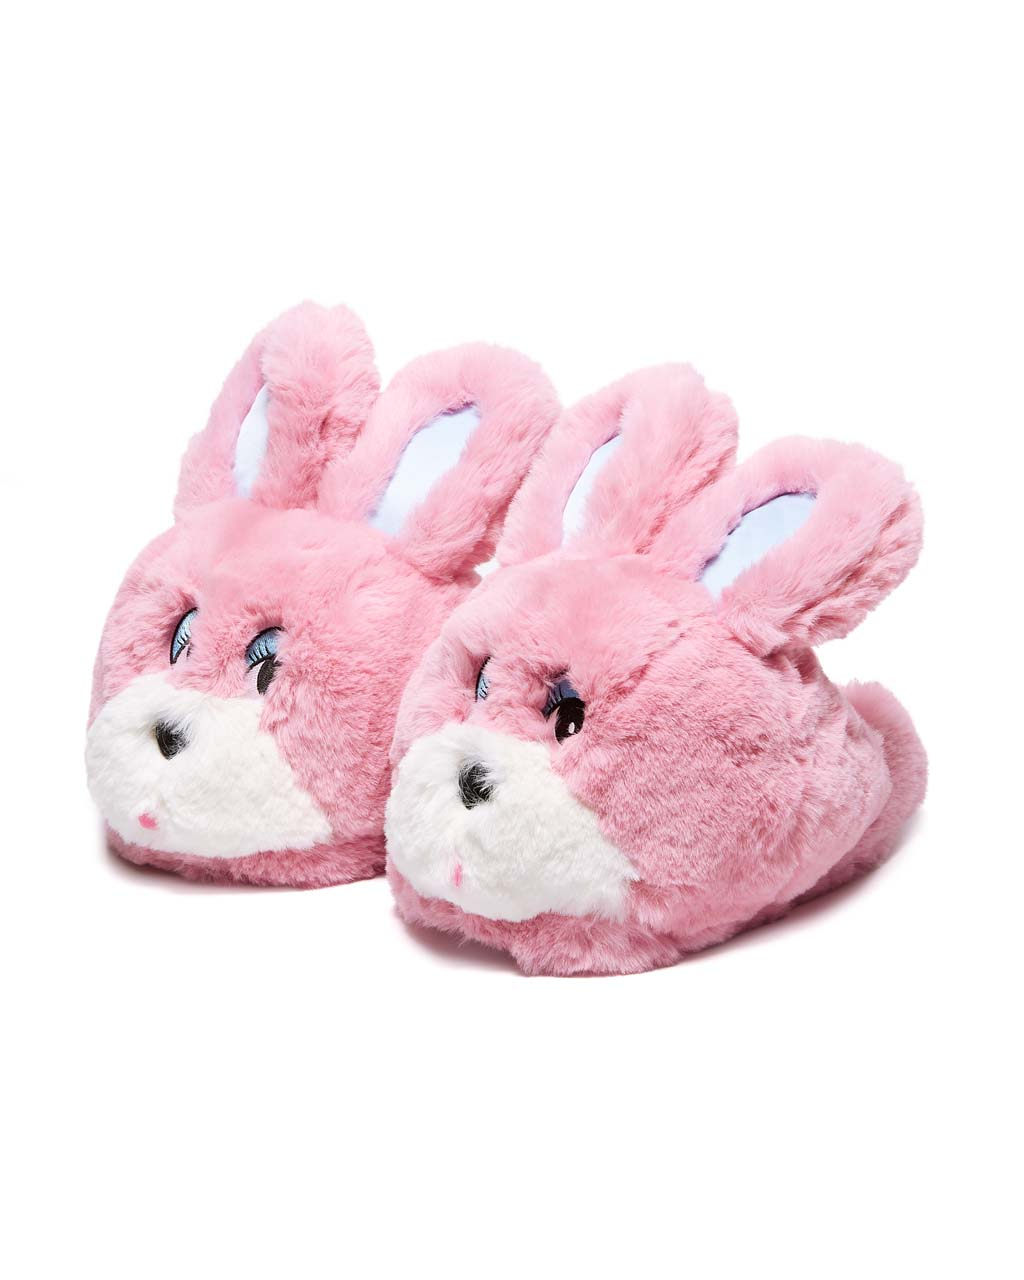 ab4f0b99e919 Bunny Slippers by lazy oaf - slippers - ban.do